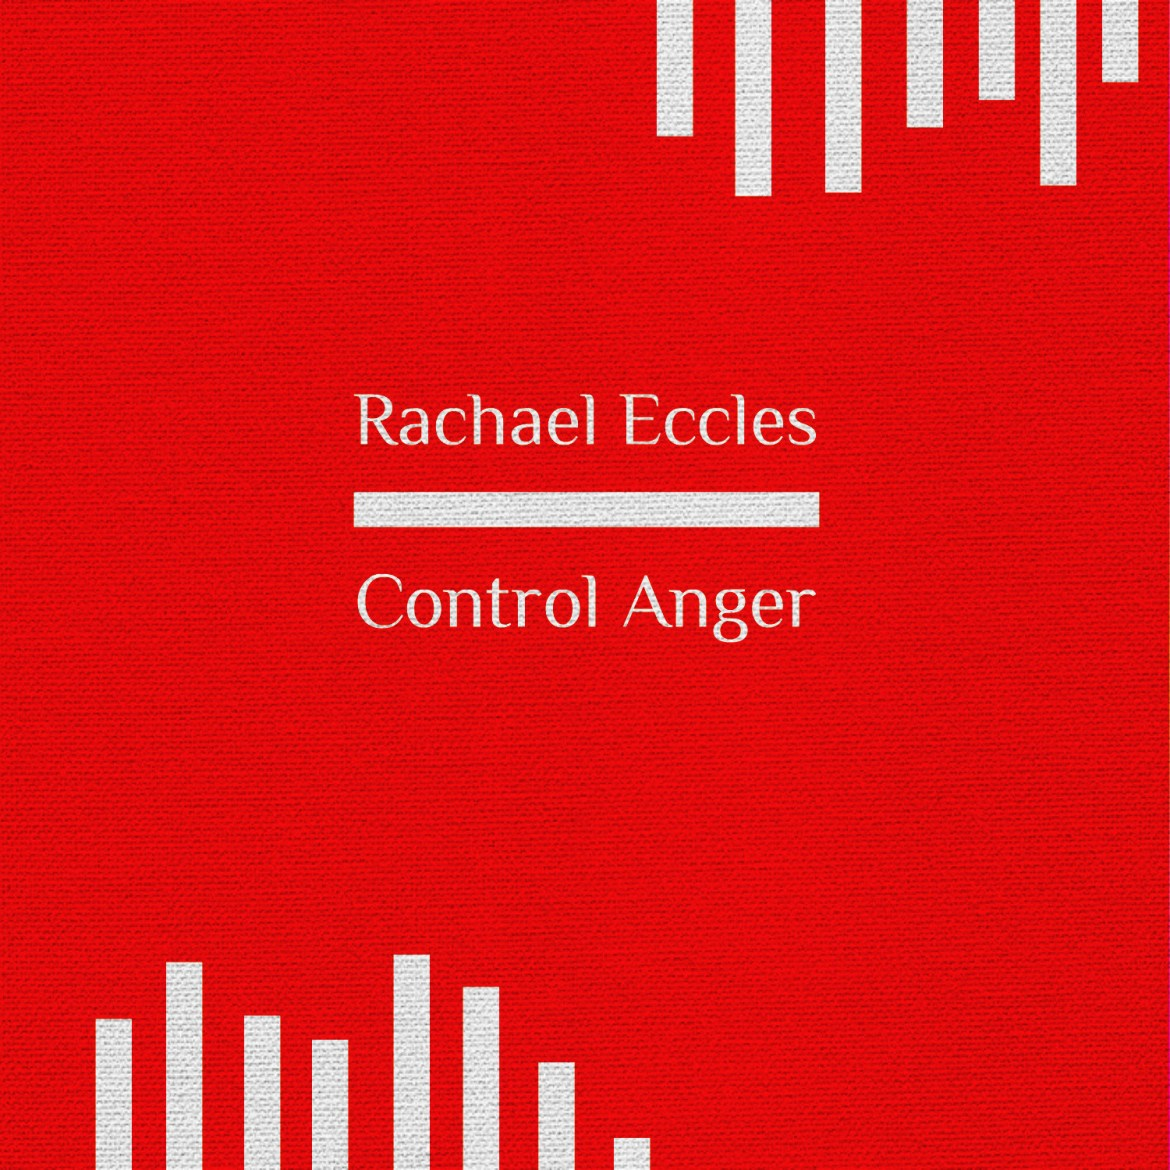 Control Anger: Reduce Your Anger and Remain in Control, Self Hypnosis Hypnotherapy instant download MP3